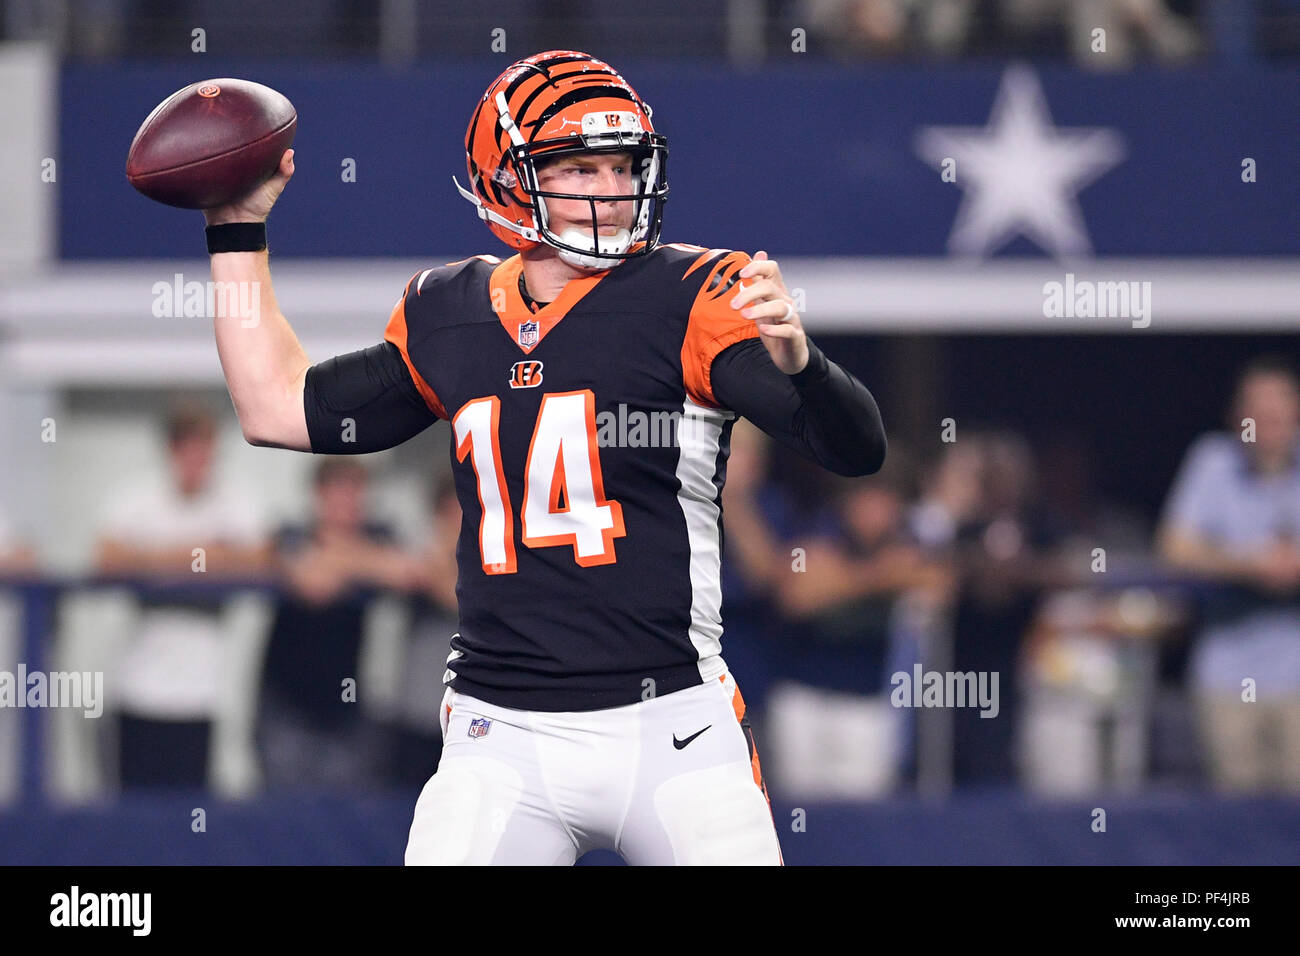 hot sale online df840 a2f8d Texas, USA. 18 August 2018. Cincinnati Bengals quarterback ...